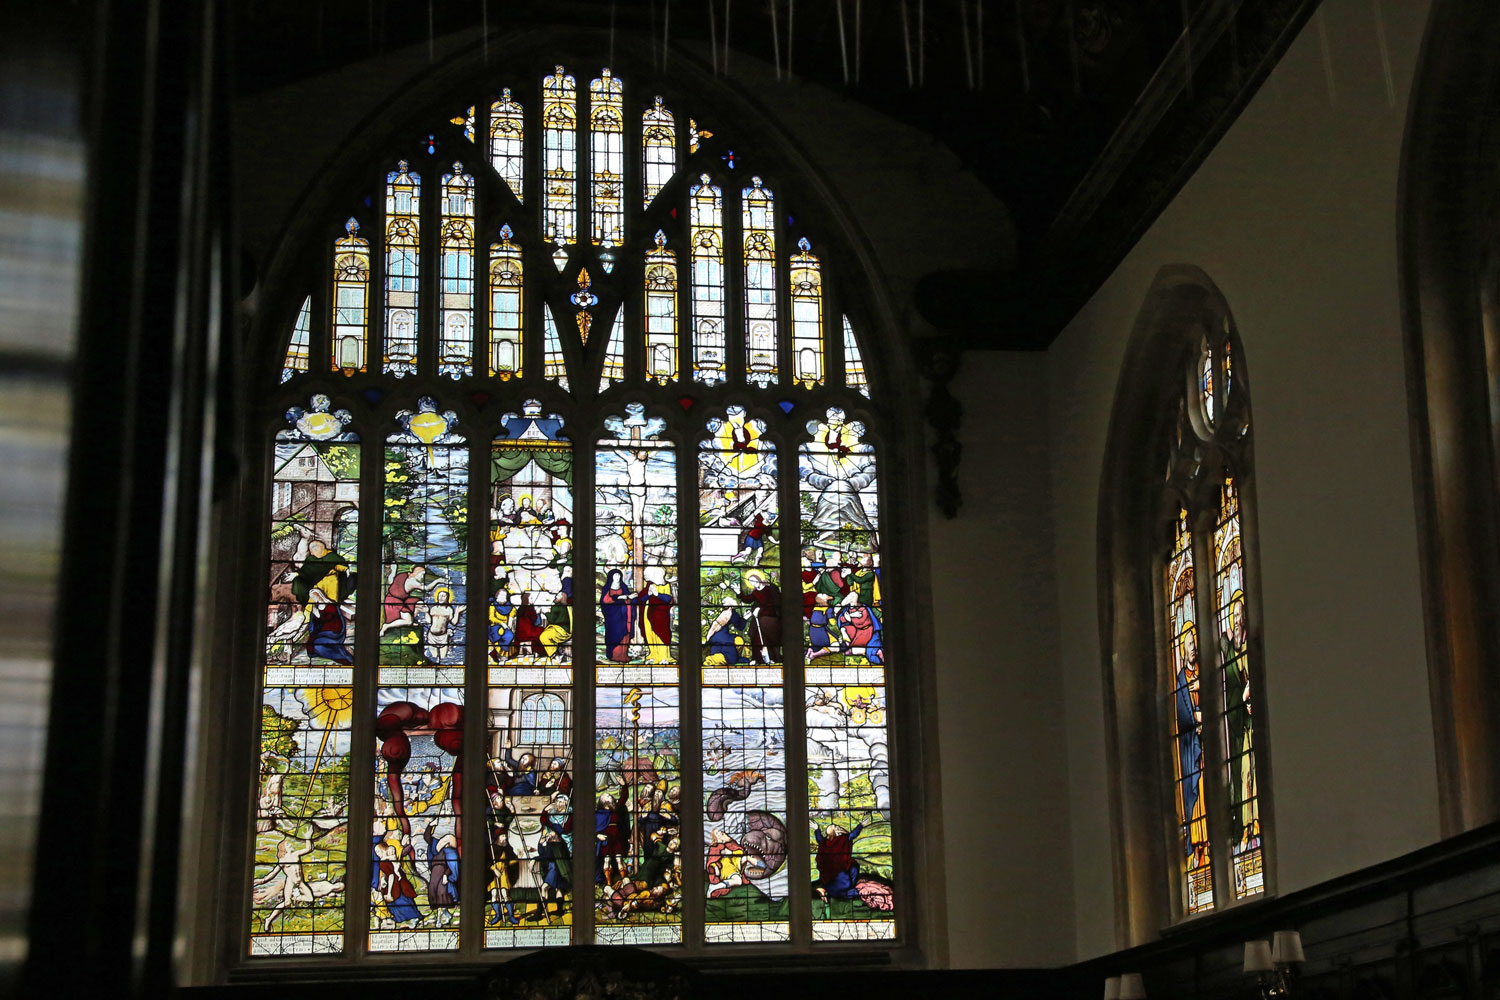 The stained glass windows at Lincoln College.